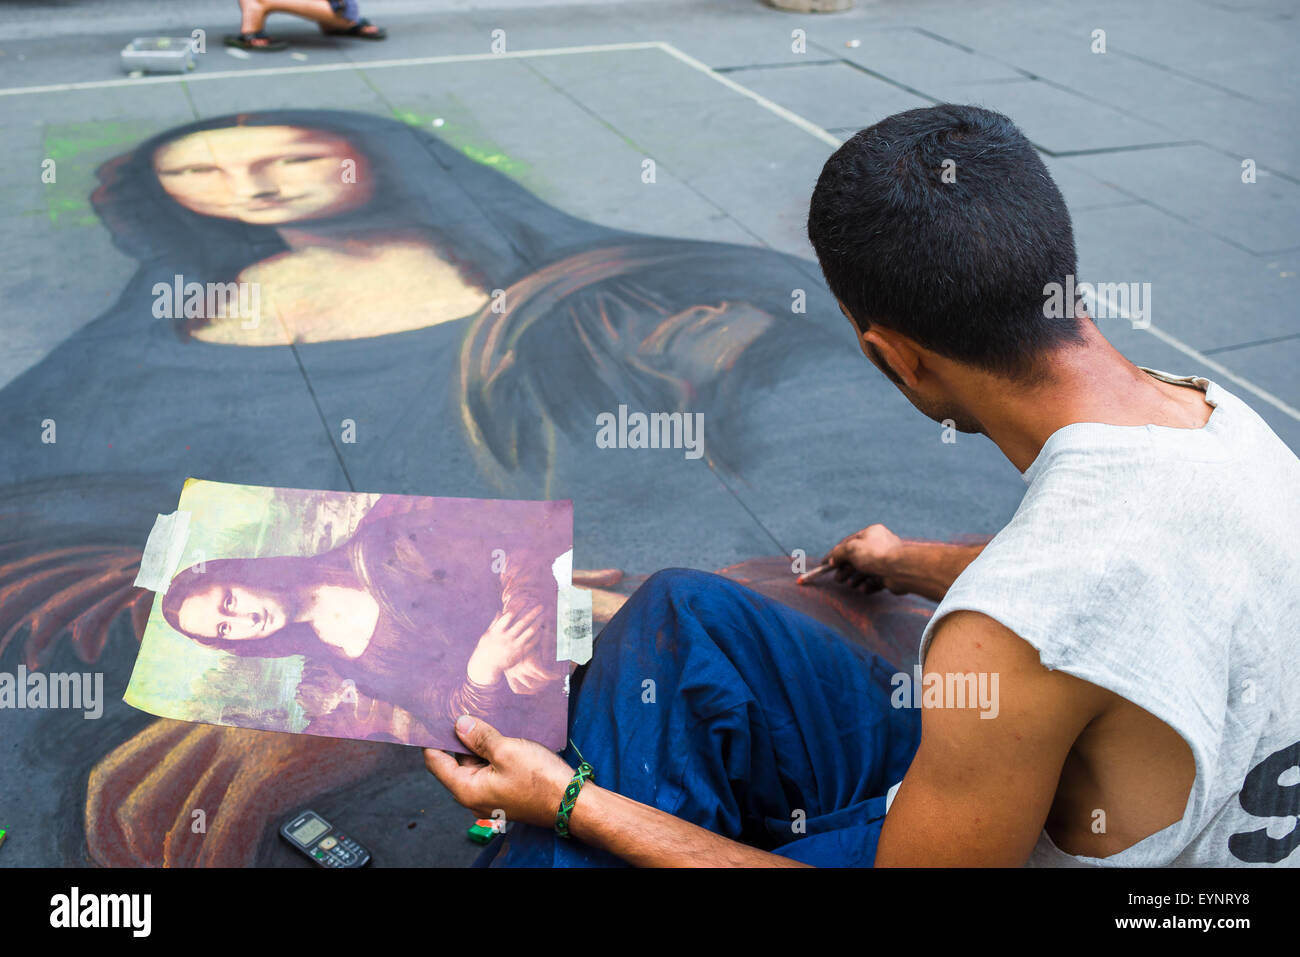 Mona Lisa, a pavement artist puts the finishing touches to a drawing of the Mona Lisa in Rome's Via Del Corso, - Stock Image